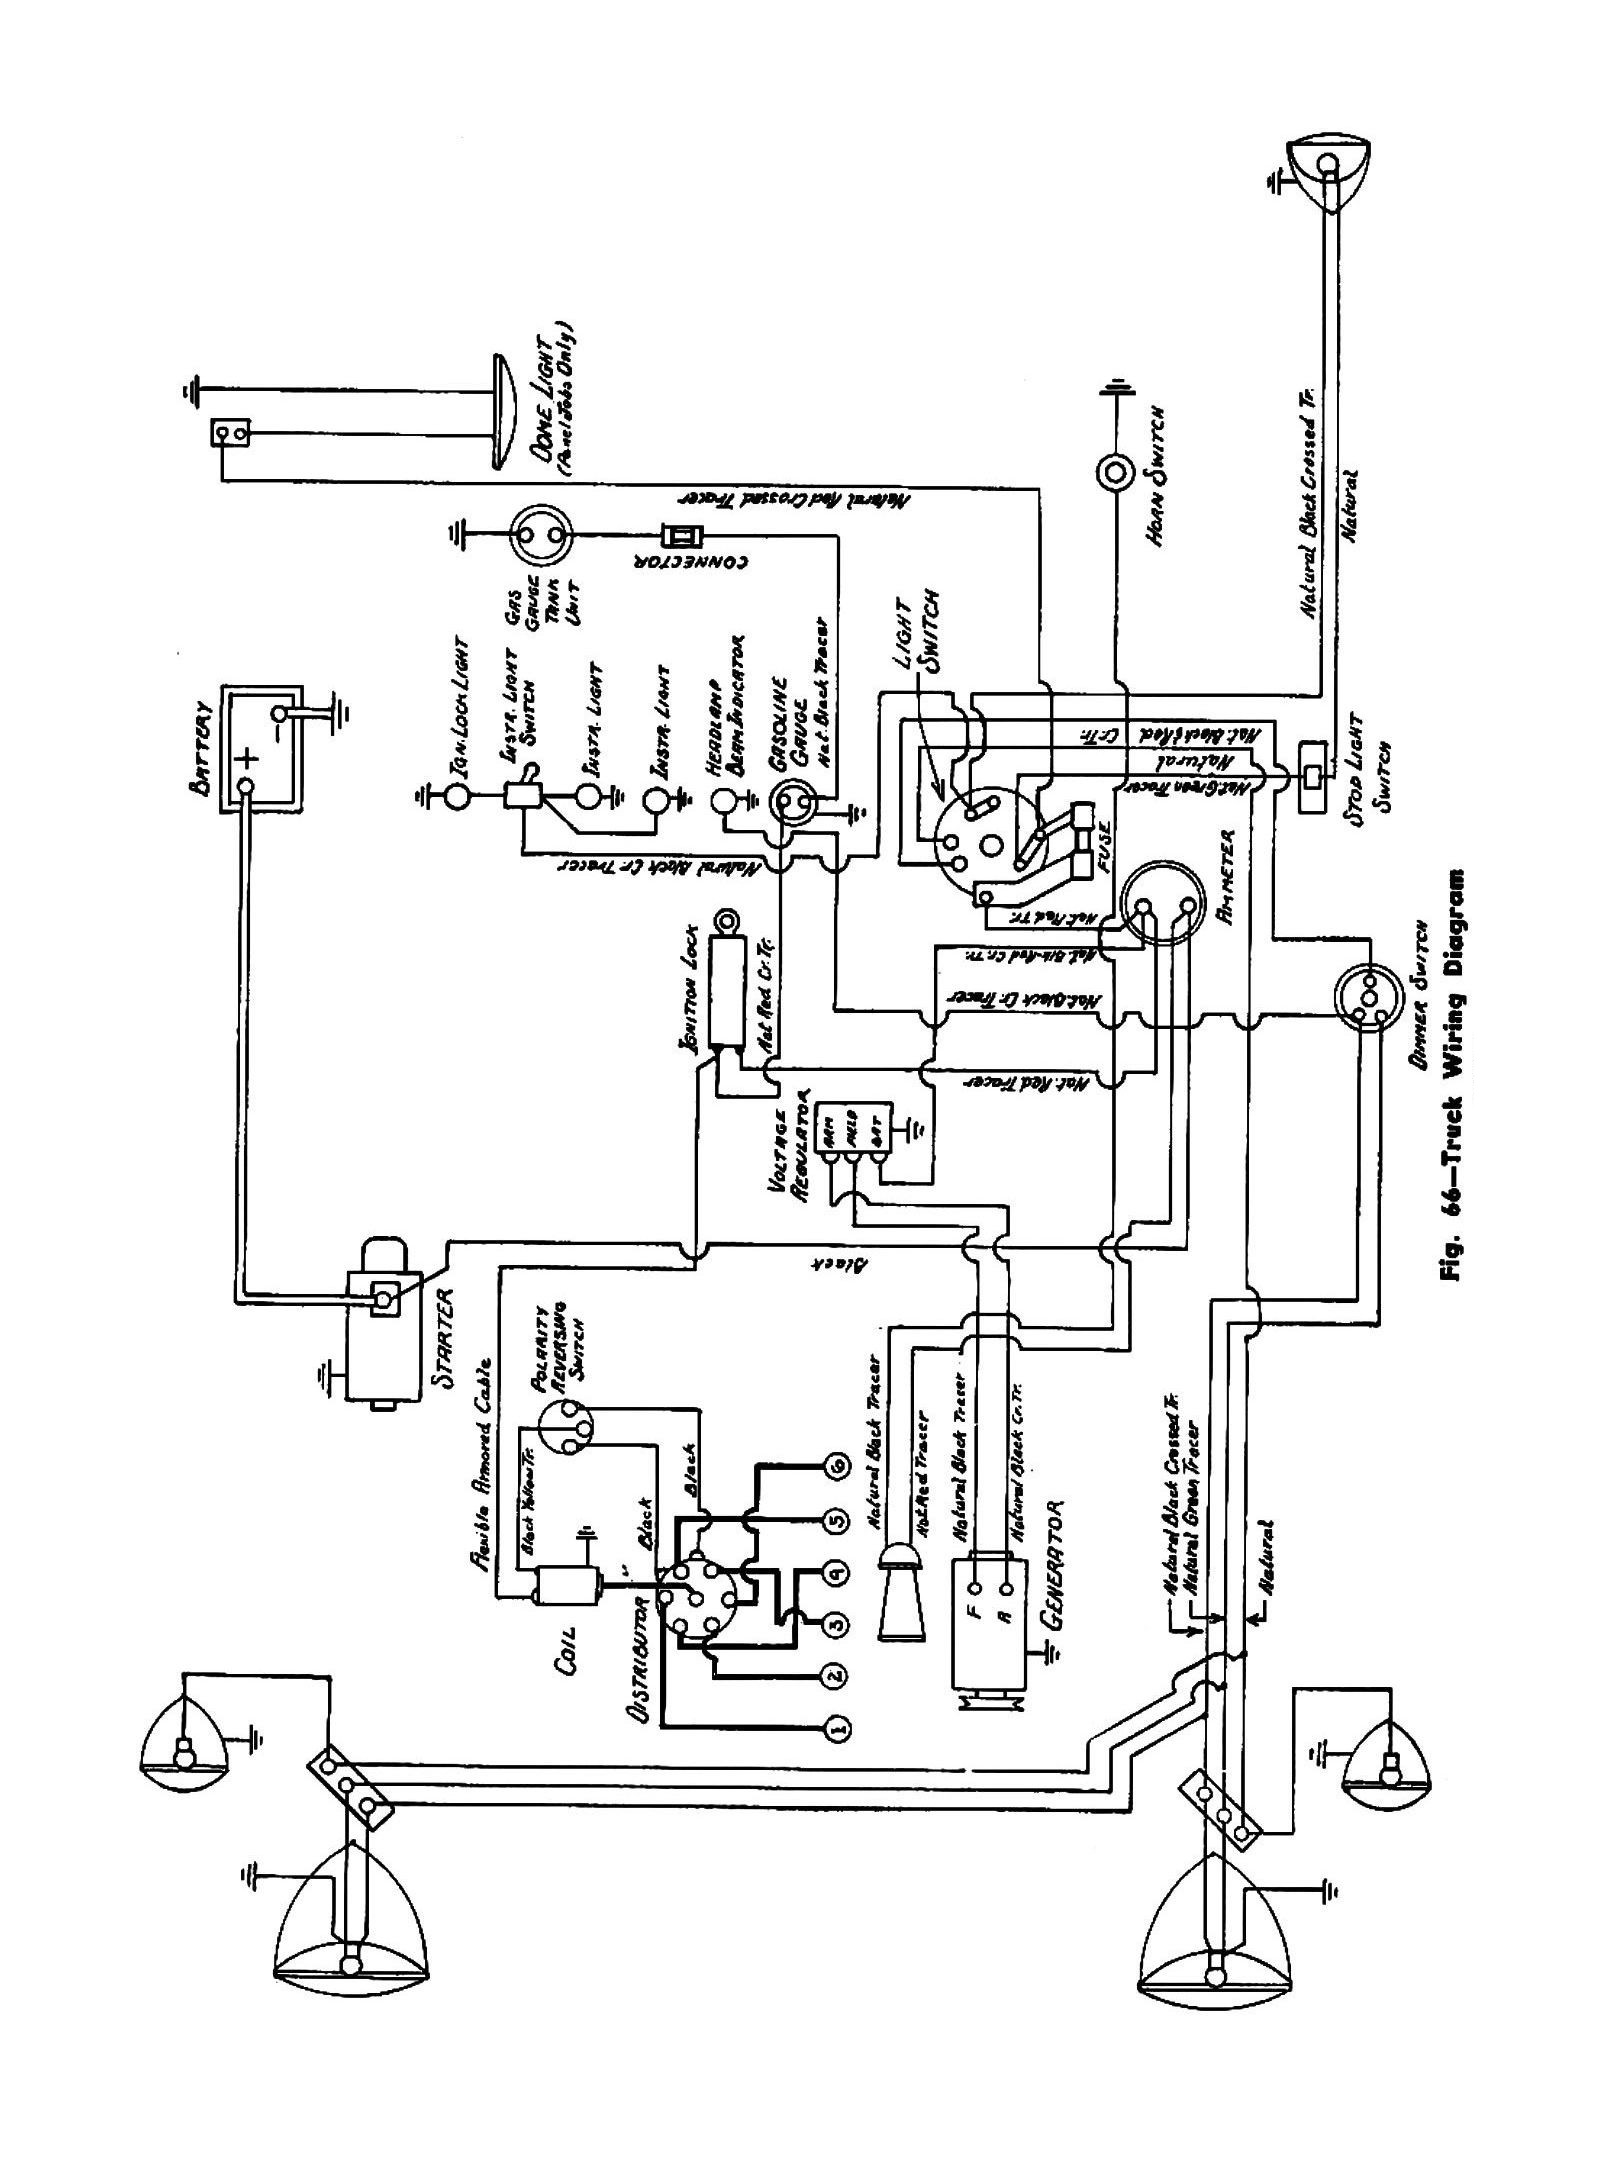 45truck truck wiring diagrams truck wiring diagrams instruction gm truck wiring harness at metegol.co